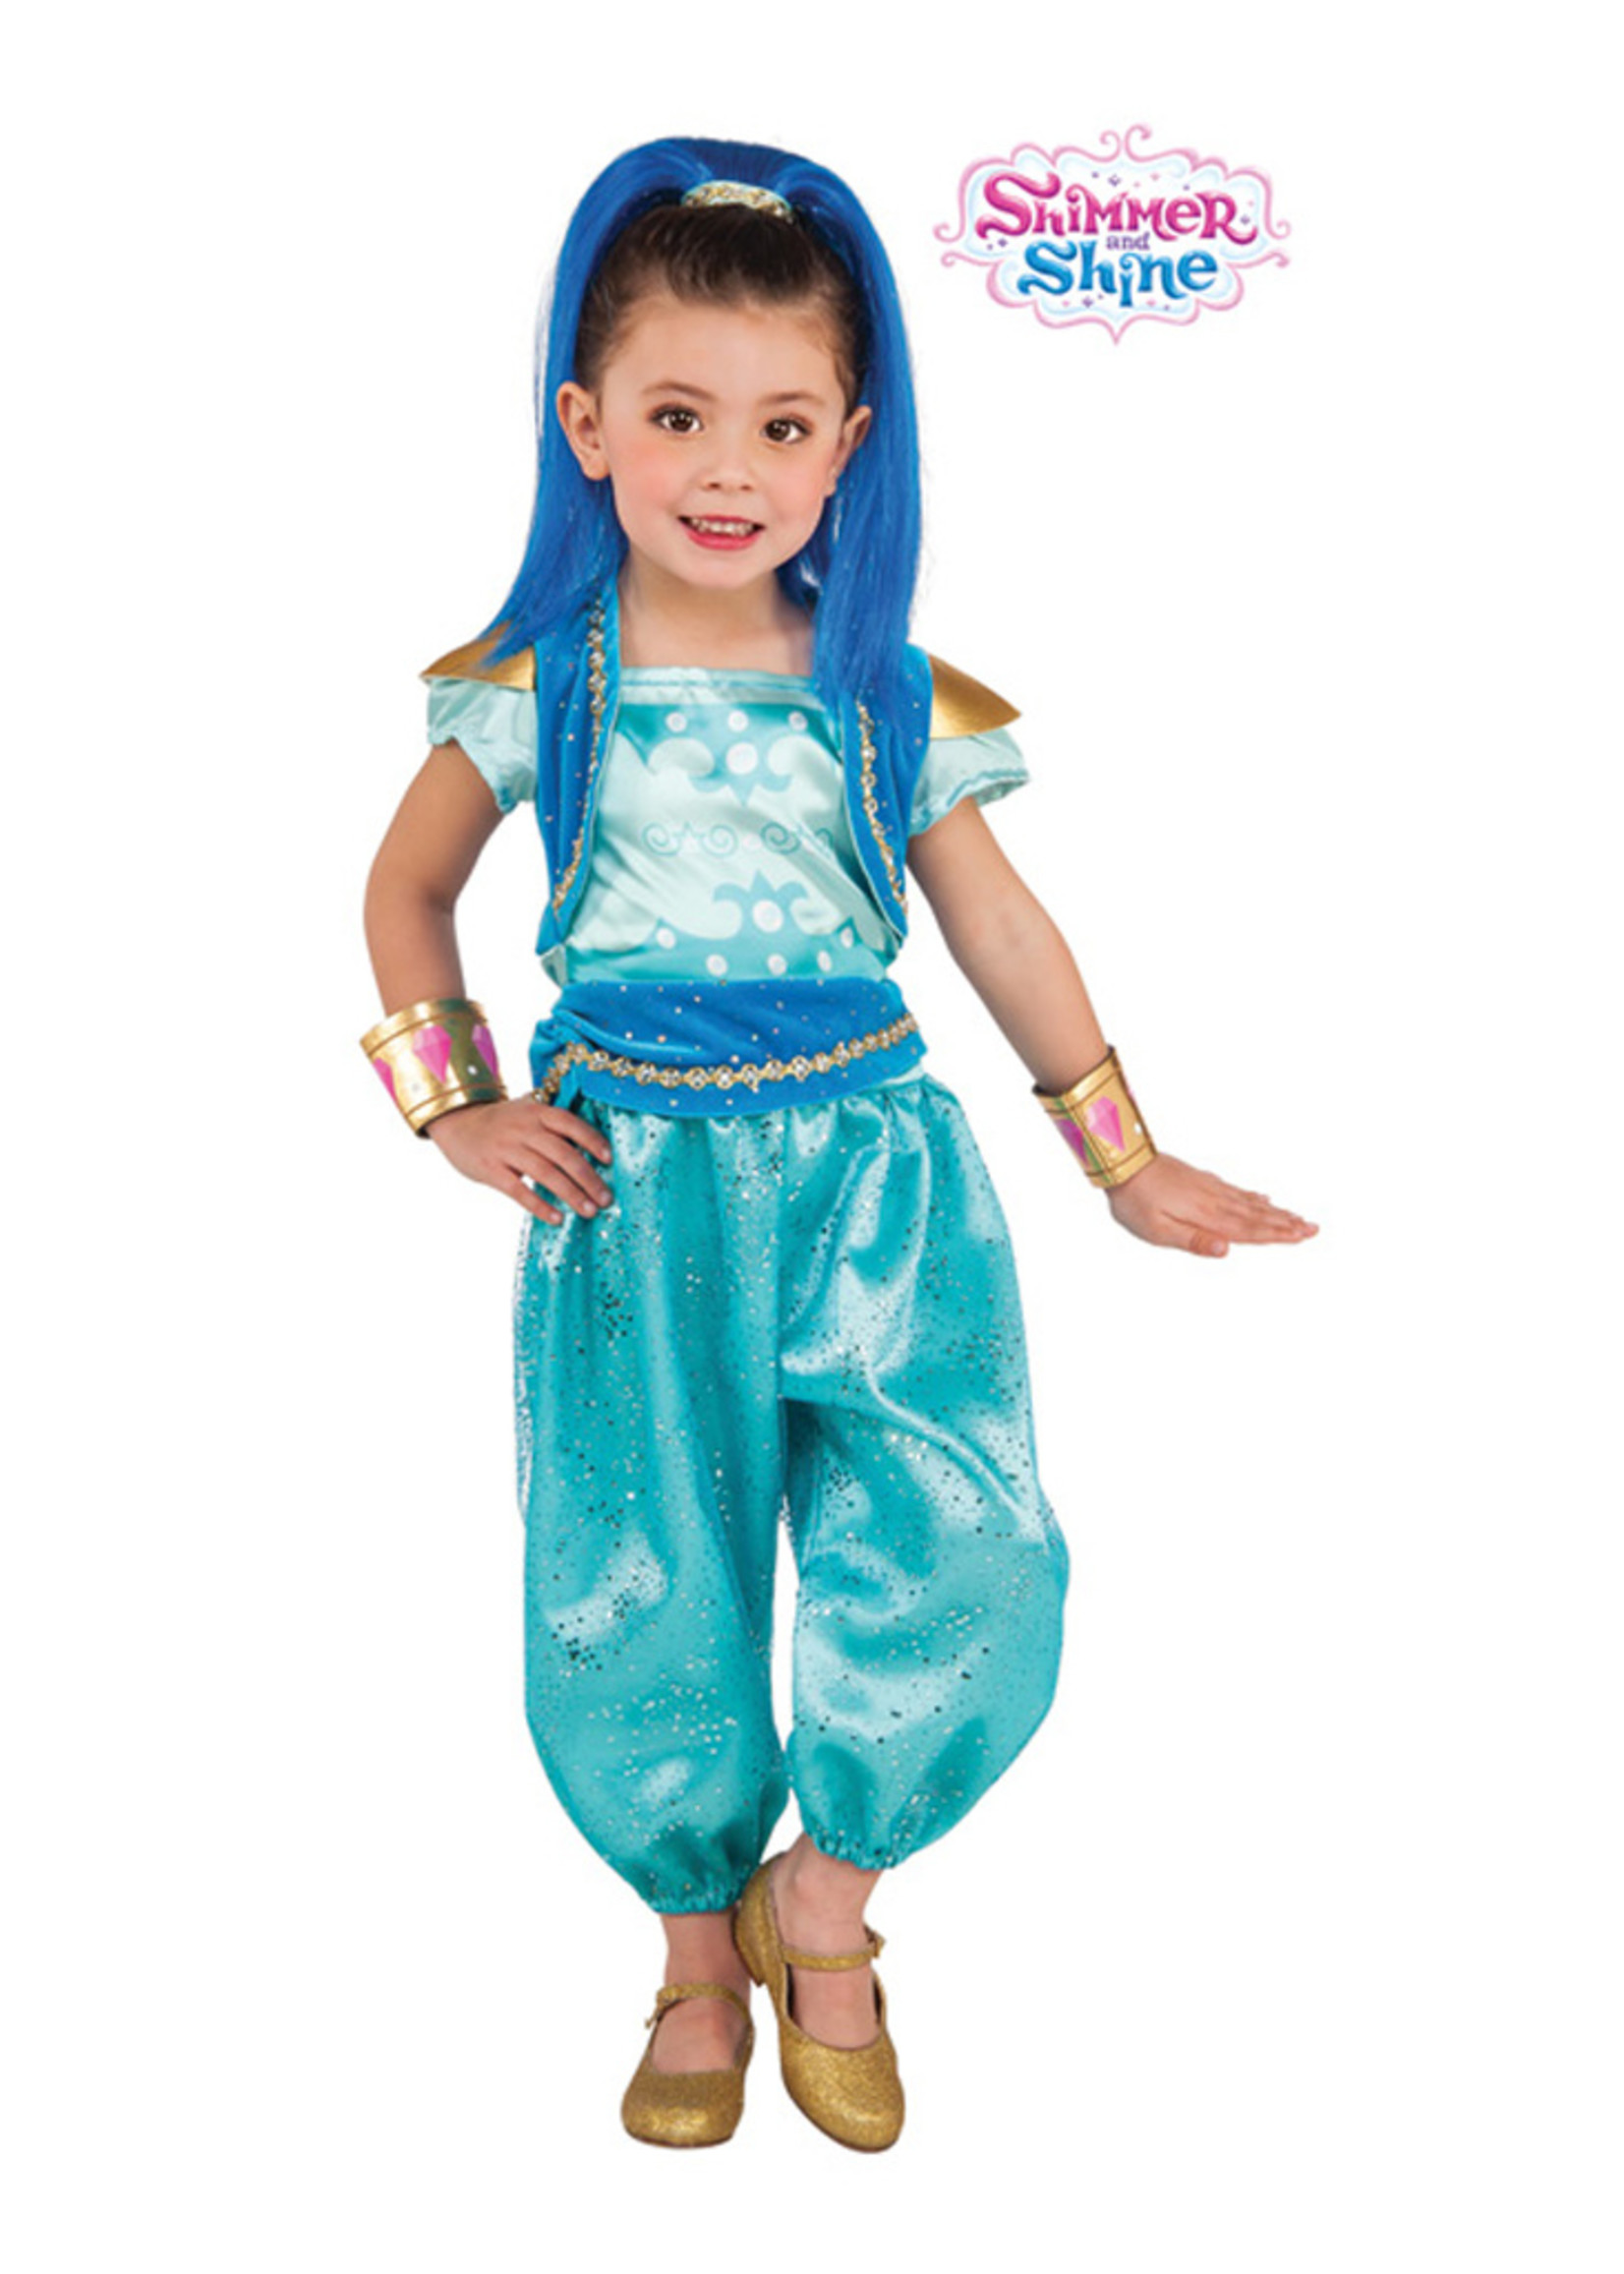 Shine Costume - Toddler